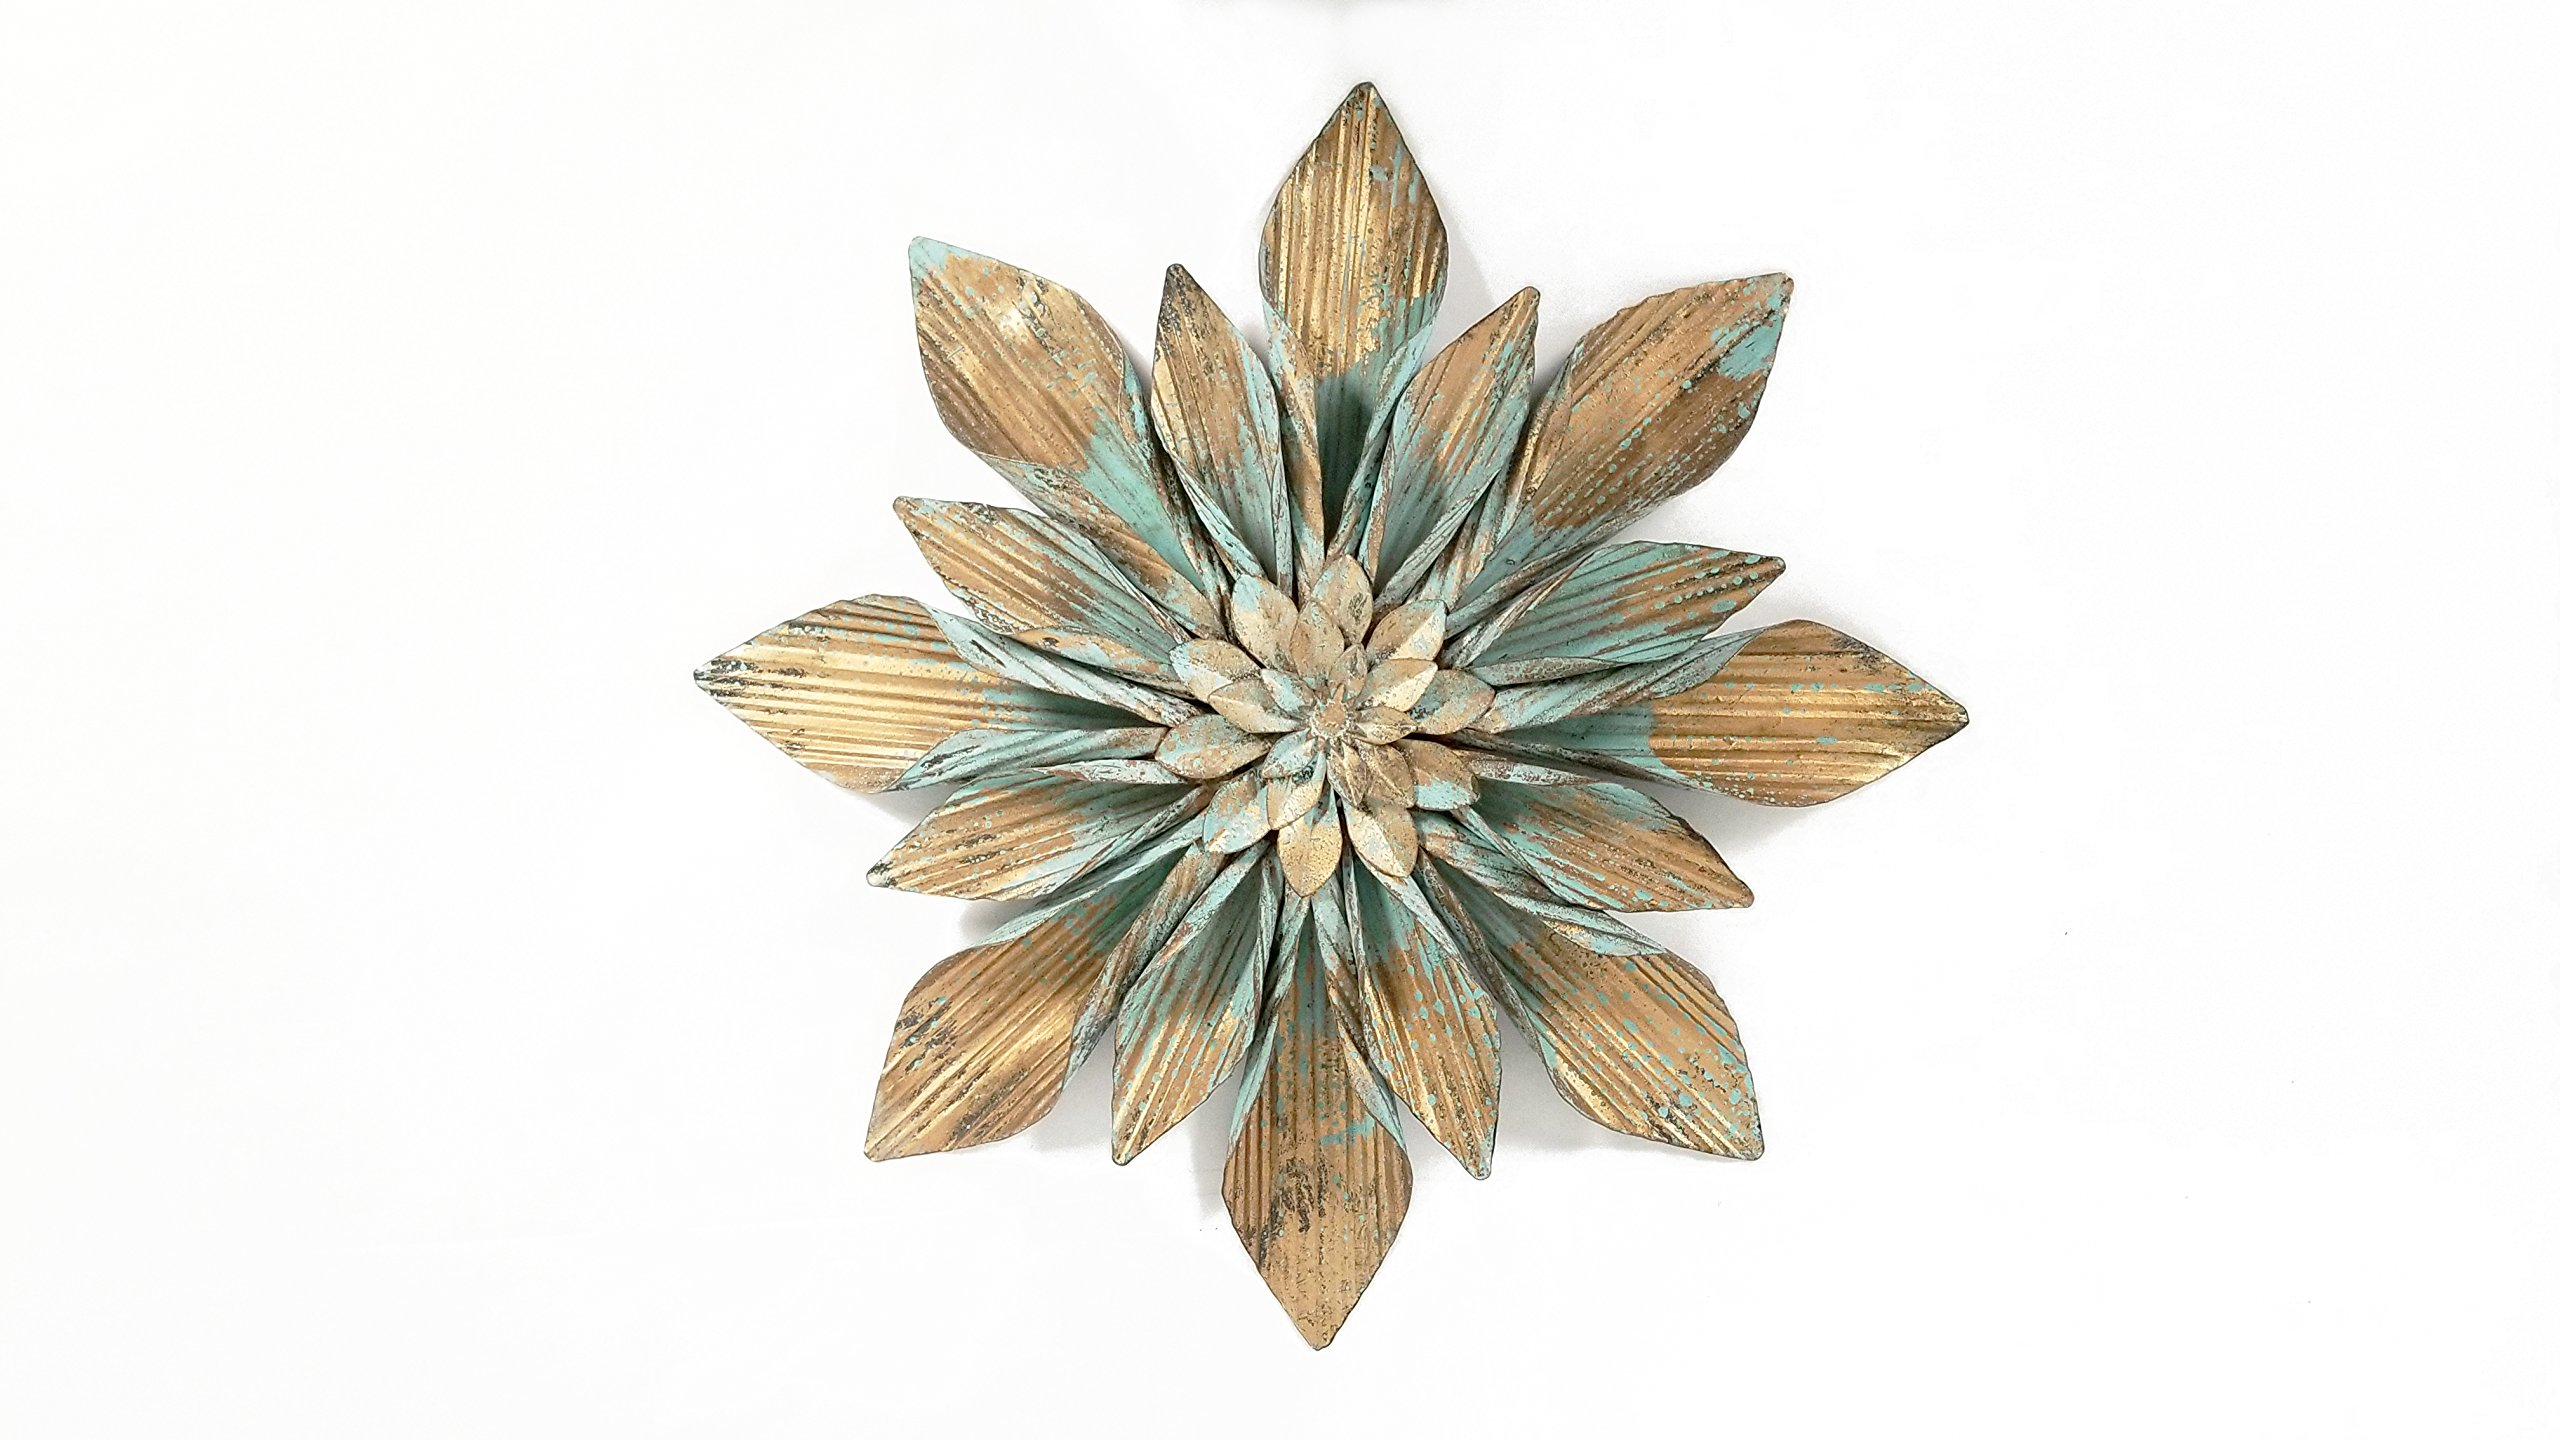 Everydecor Copper and Turquoise Flower Metal Wall Decor